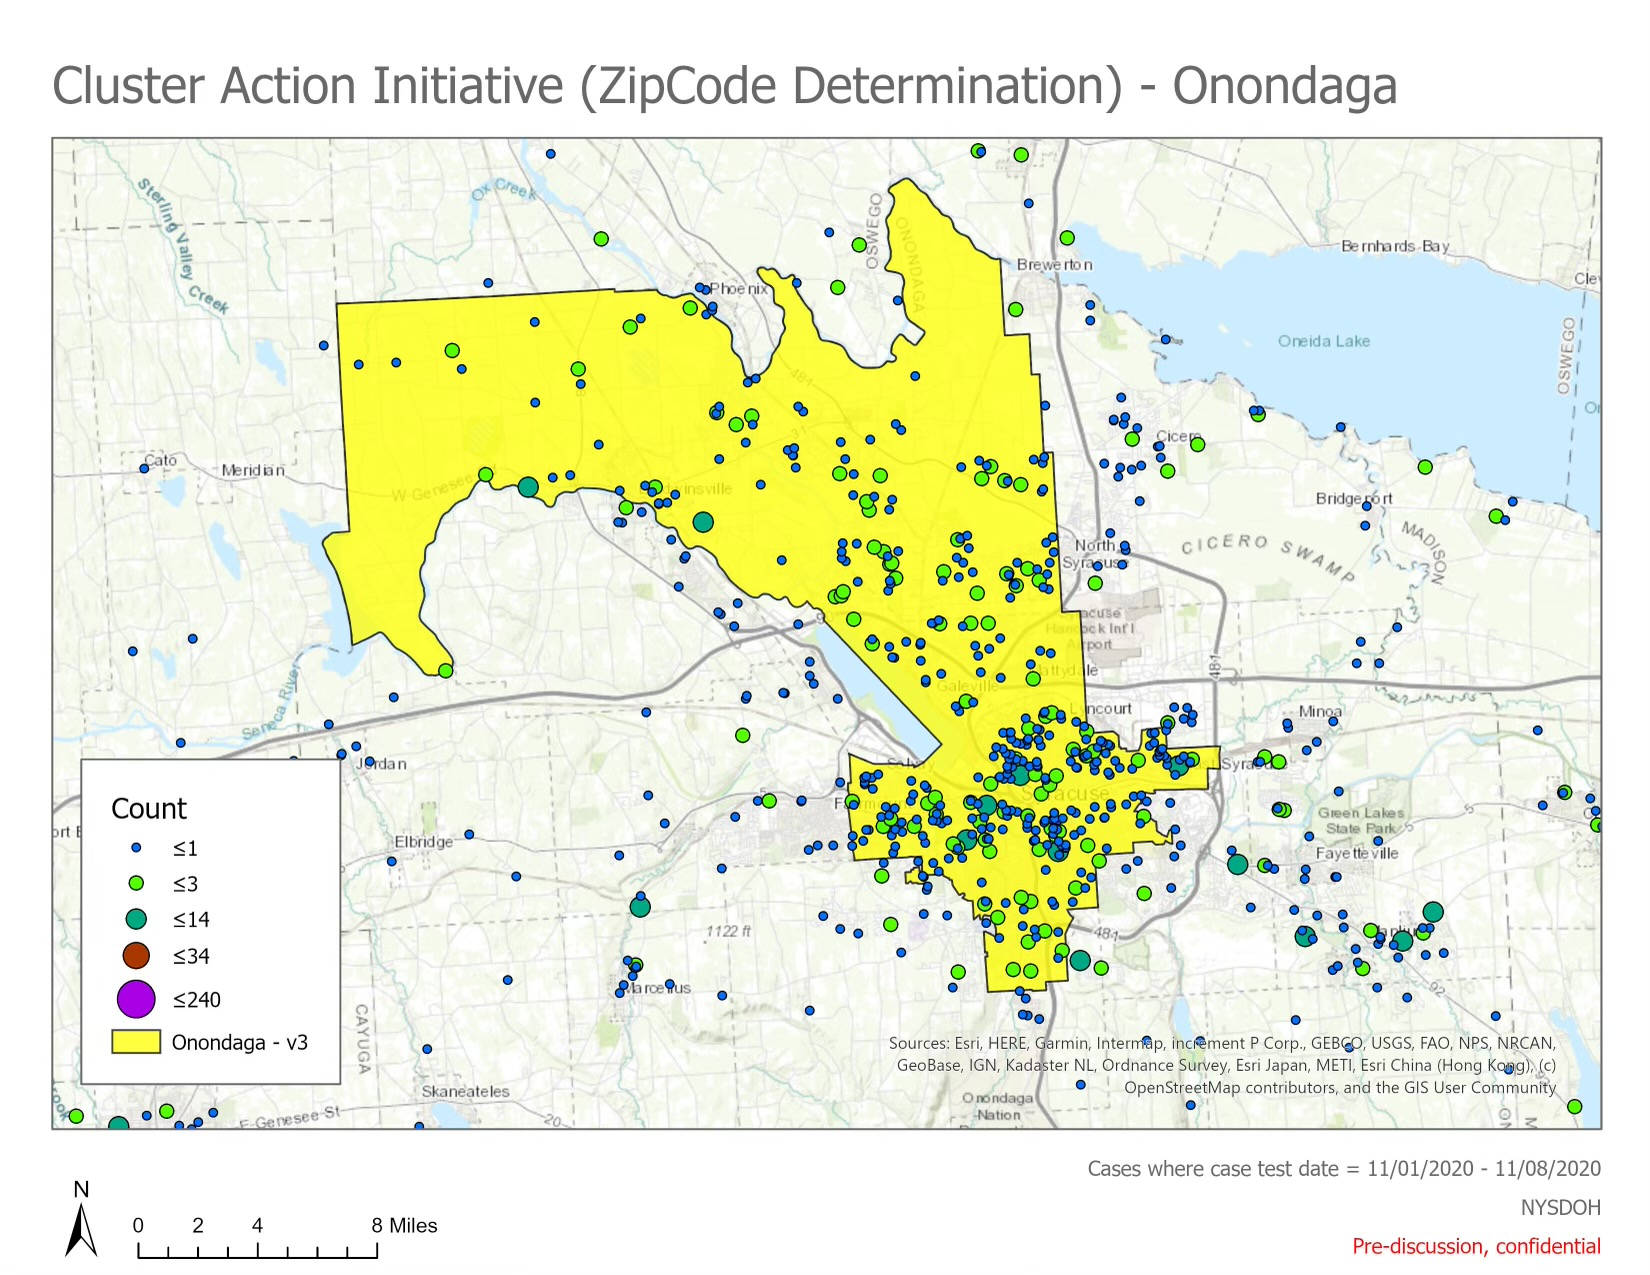 Dining Restrictions More School Testing As Syracuse Parts Of Onondaga County In Yellow Zone Wrvo Public Media